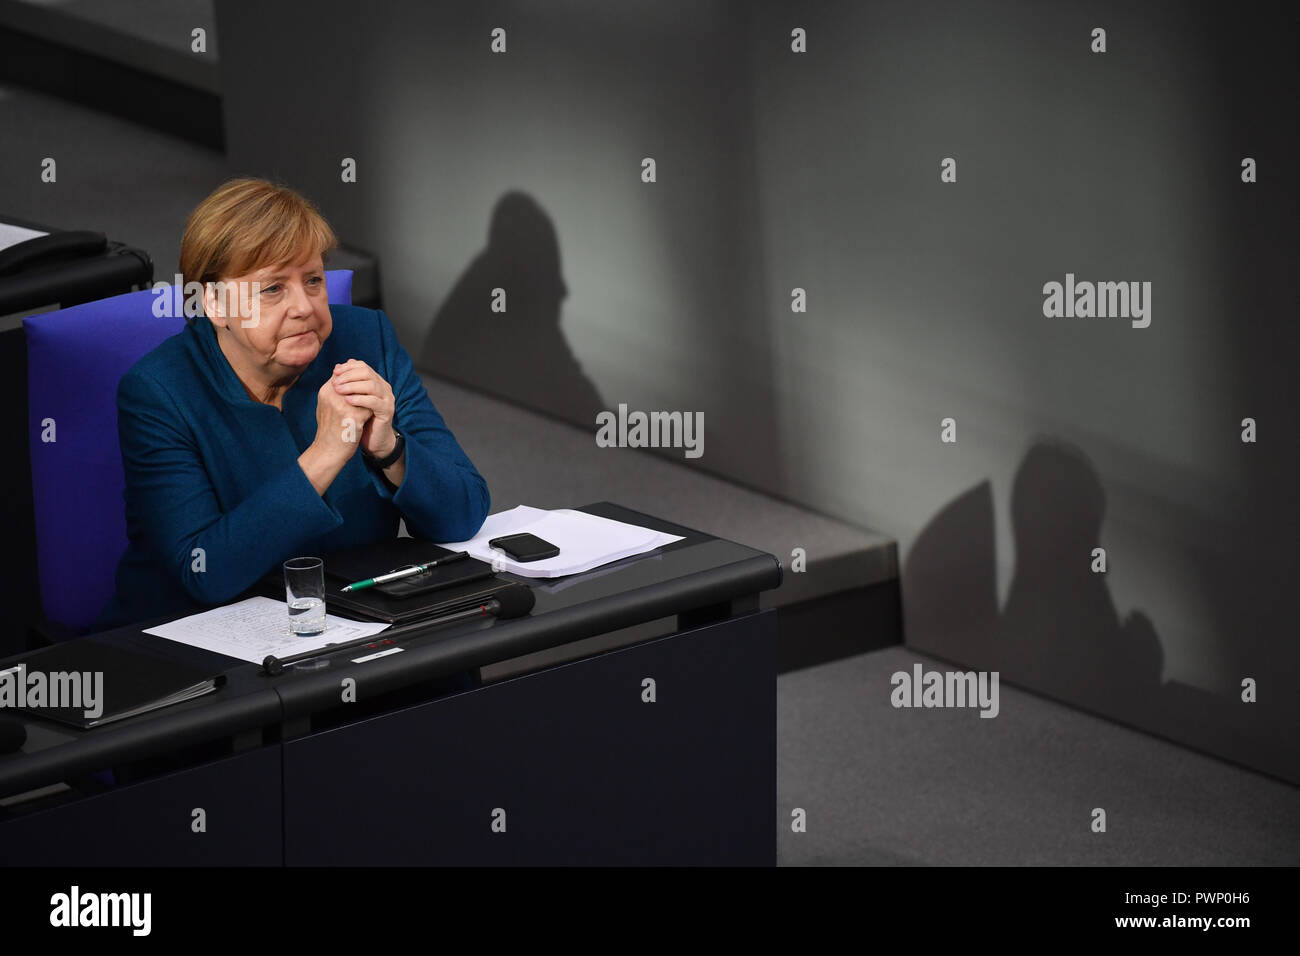 Berlin, Germany. 17th Oct, 2018. Chancellor Angela Merkel (CDU) sits in the government bench at the plenary session of the German Bundestag after her government declaration on the EU summit in Brussels. The 57th session of the 19th legislature will focus on European policy. Photo: Bernd Von Jutrczenka/dpa Credit: dpa picture alliance/Alamy Live News - Stock Image